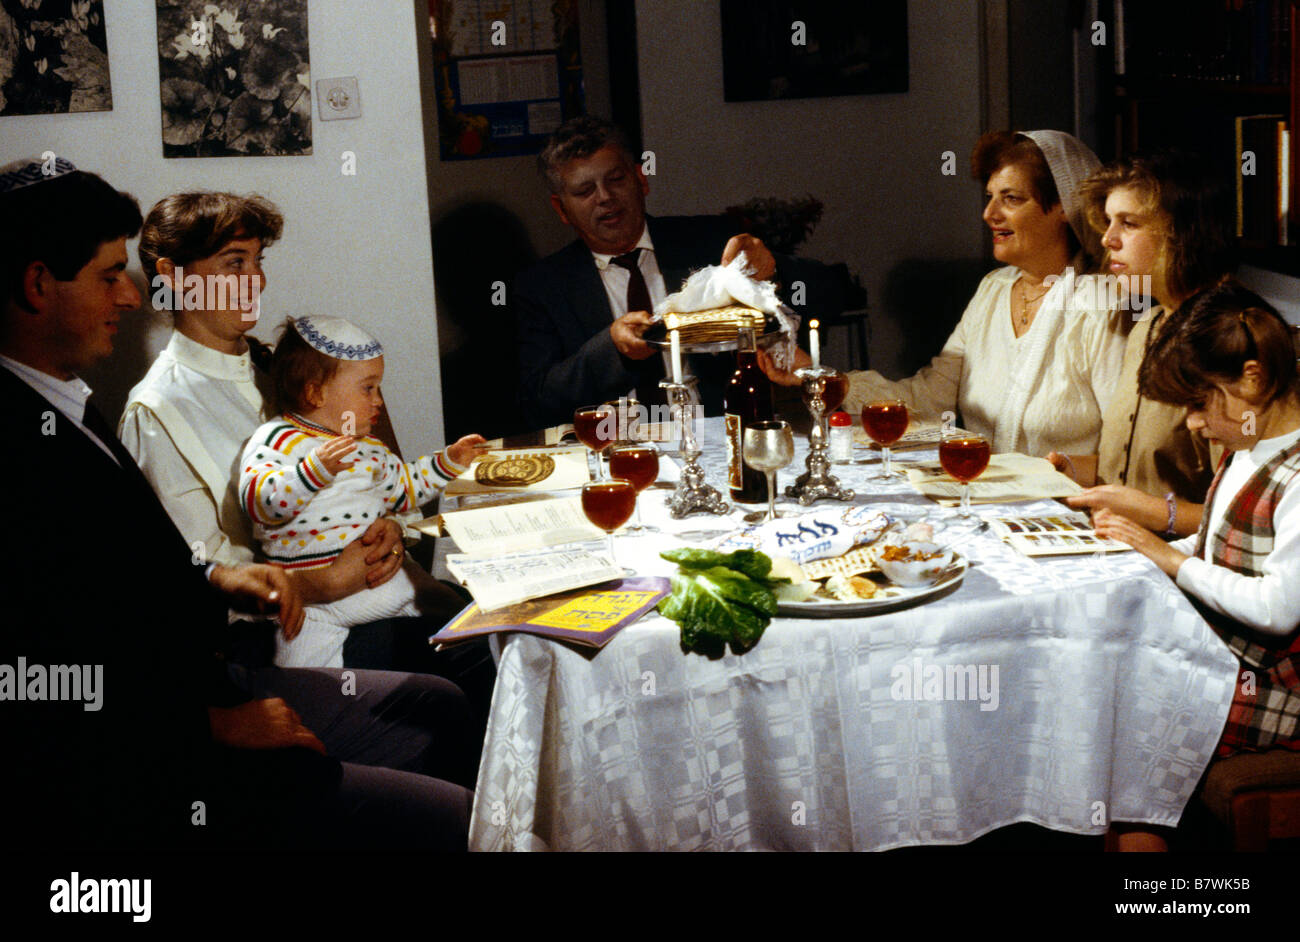 Israel Passover Seder Family Meal - Stock Image